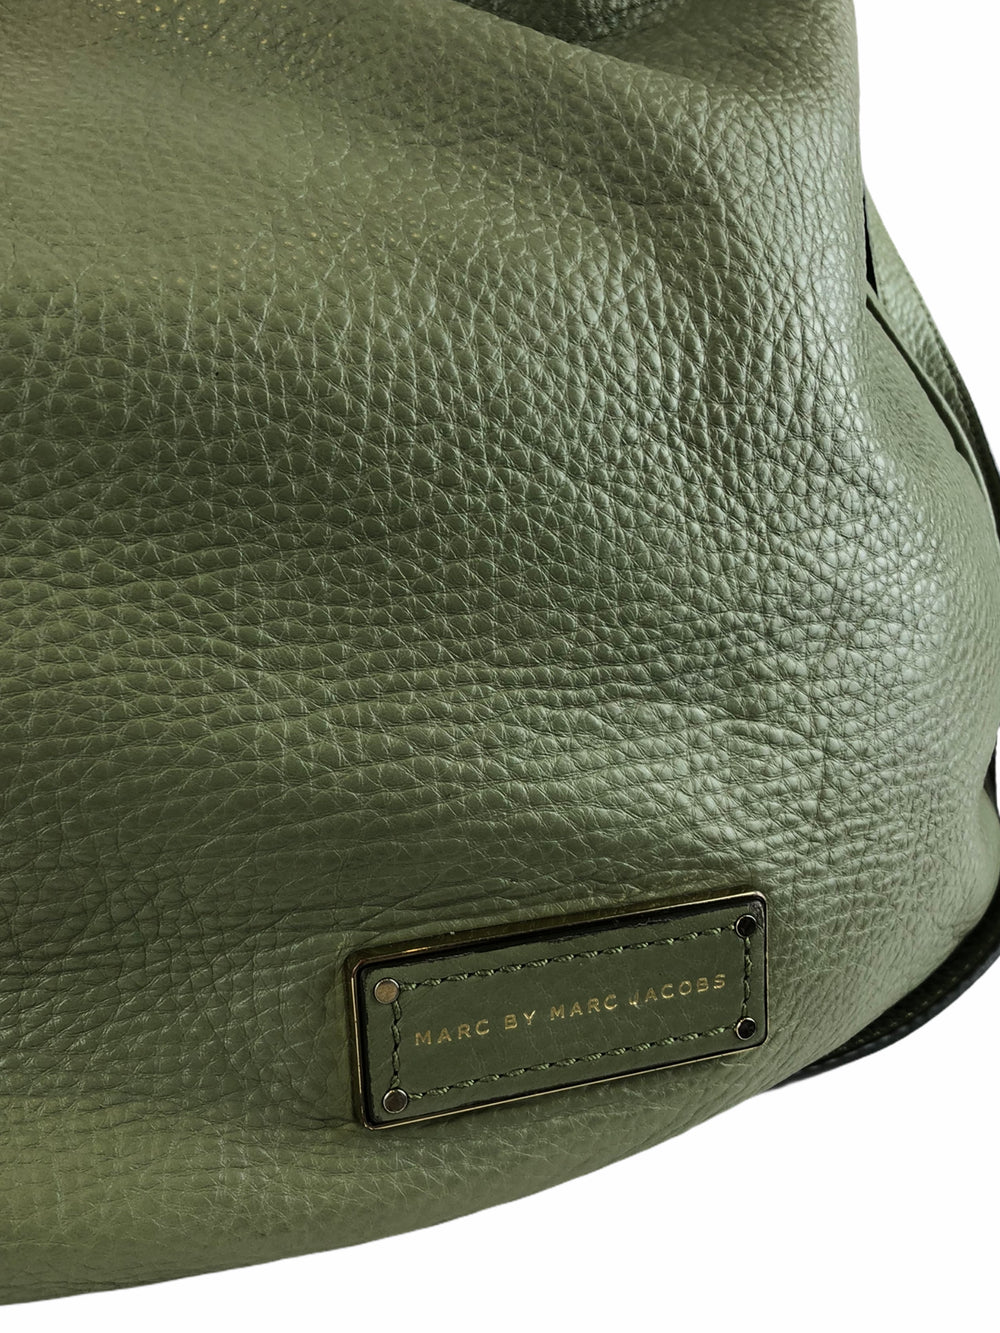 Marc by Marc Jacobs Pistachio Green